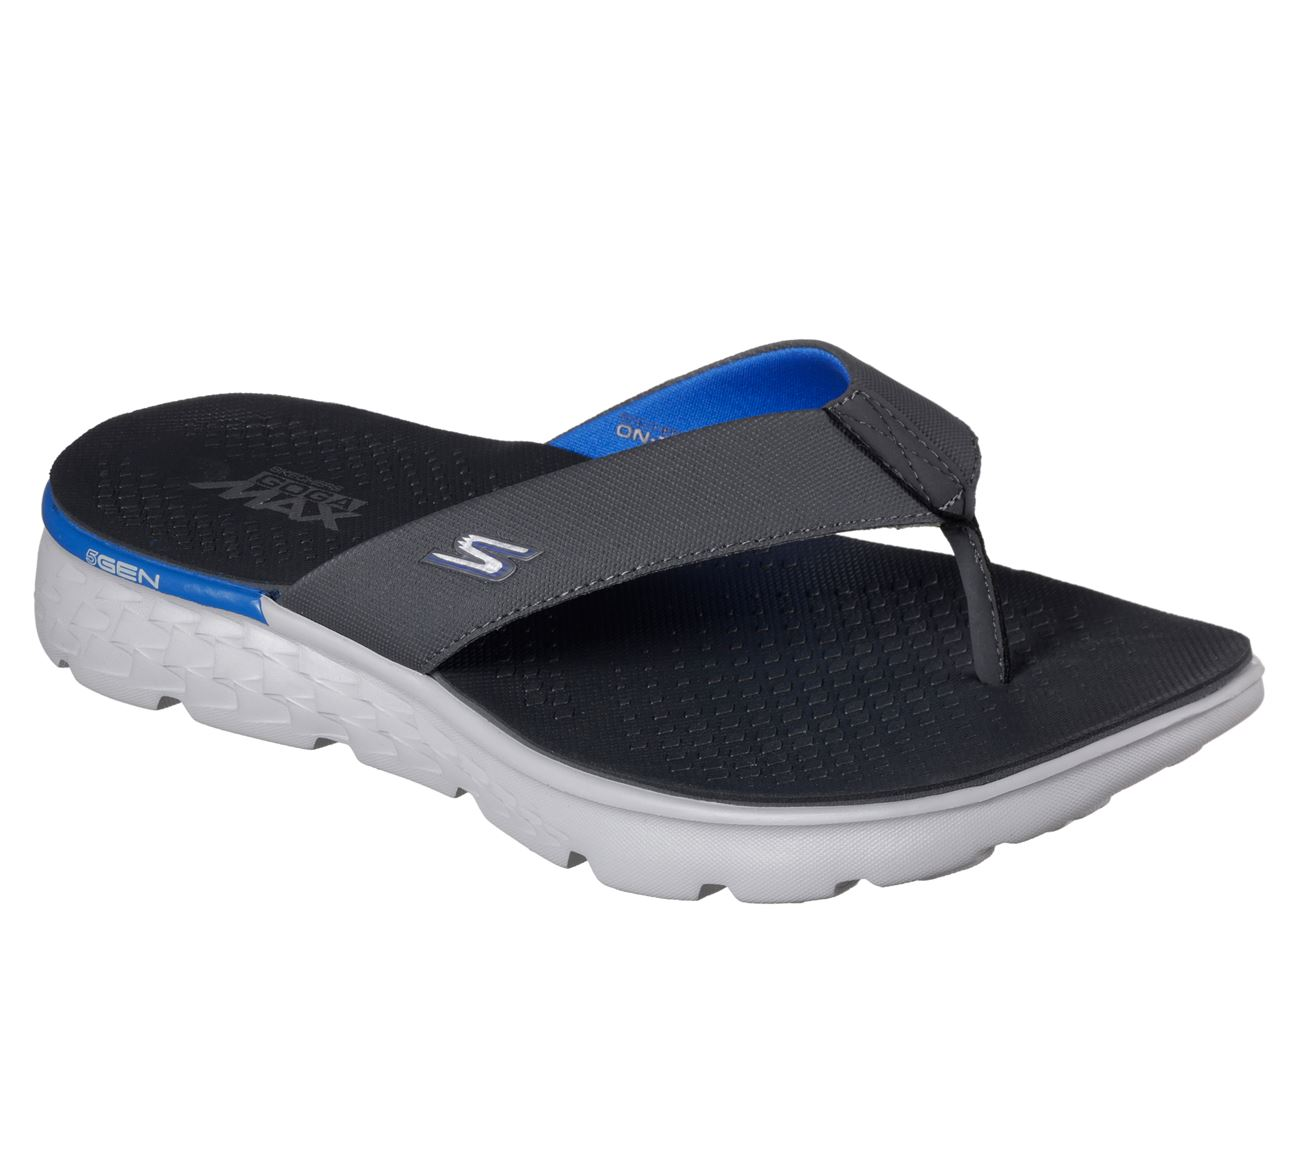 Skechers Performance Mens On The Go 400 Sandals Shore-7445